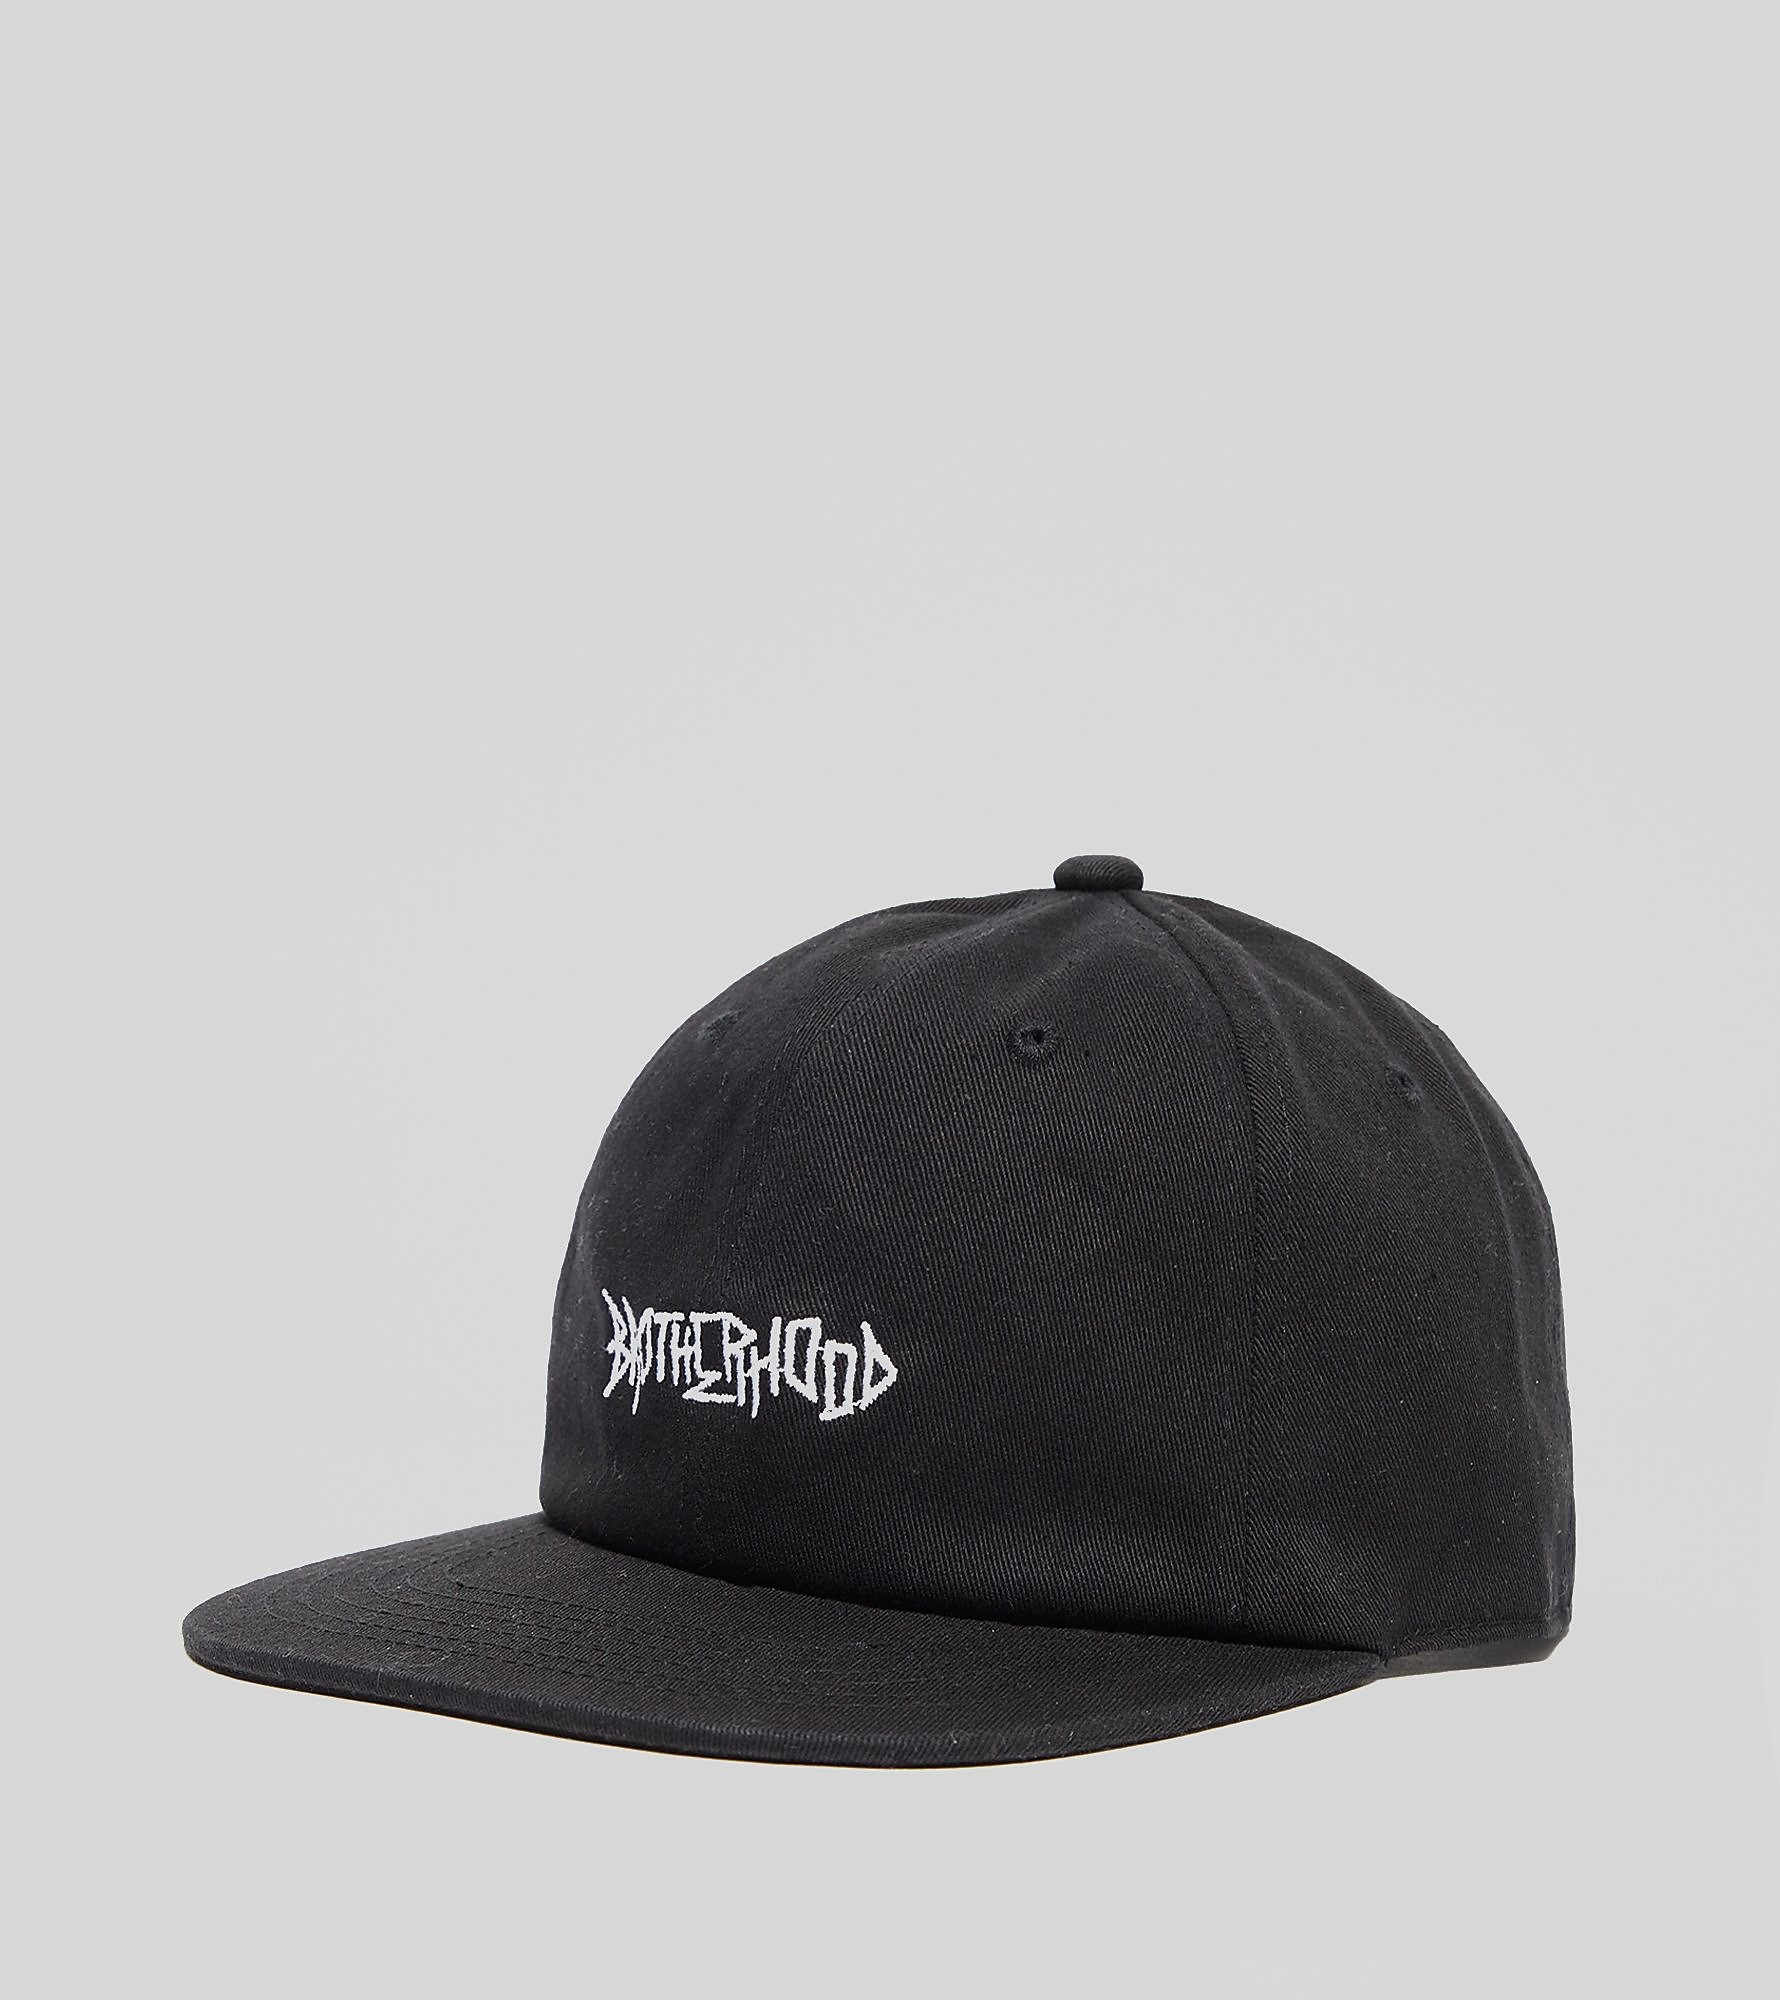 Brotherhood Iconic Cap